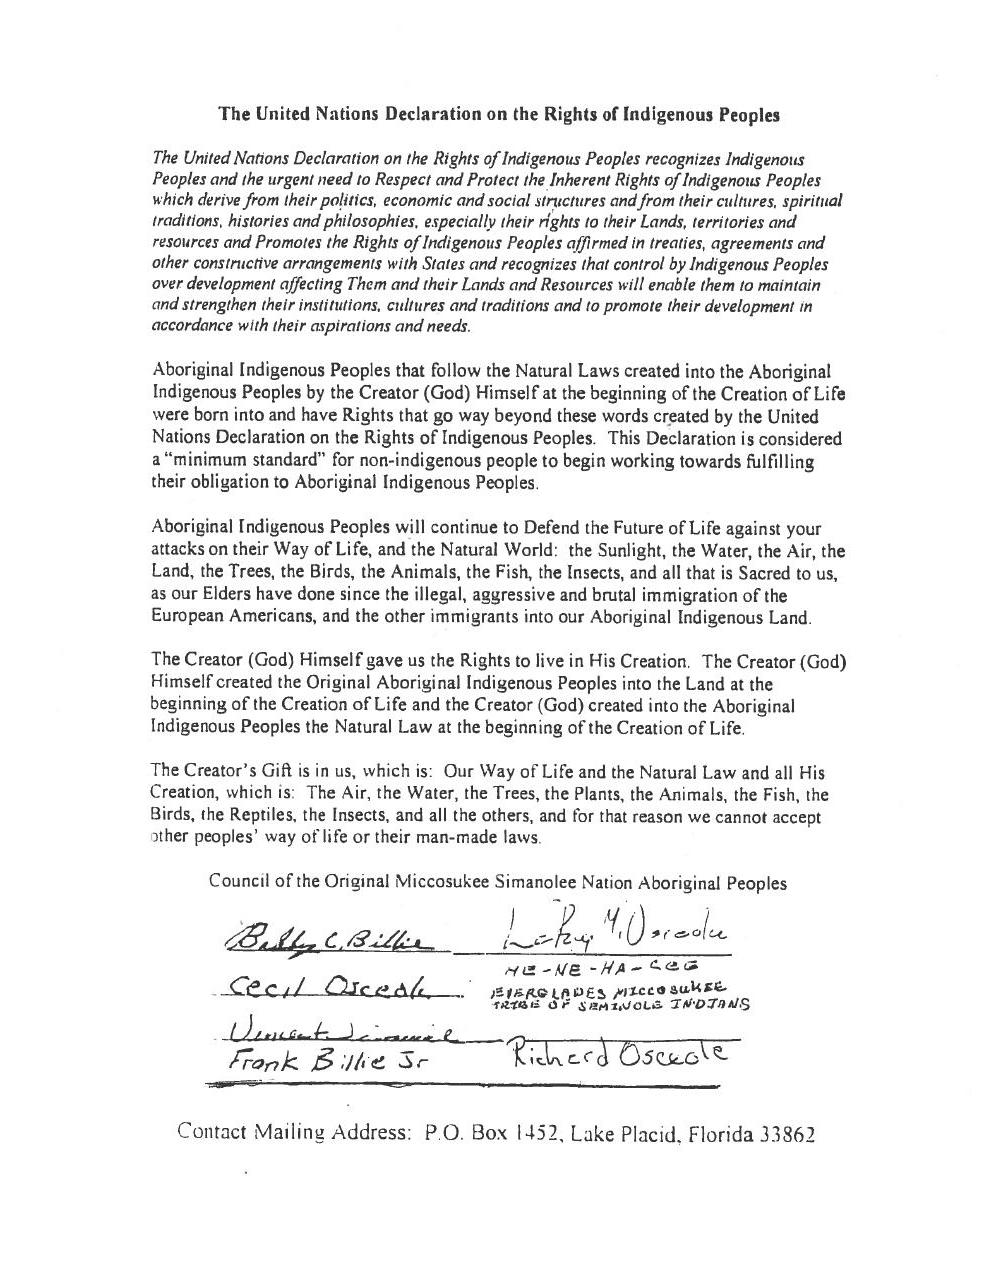 1000x1275 U.N. Declaration on the Rights of Indigenous Peoples, in Council of the Original Miccosukee Simanolee Nation, by John S. Quarterman, for SpectraBusters.org, 21 November 2013